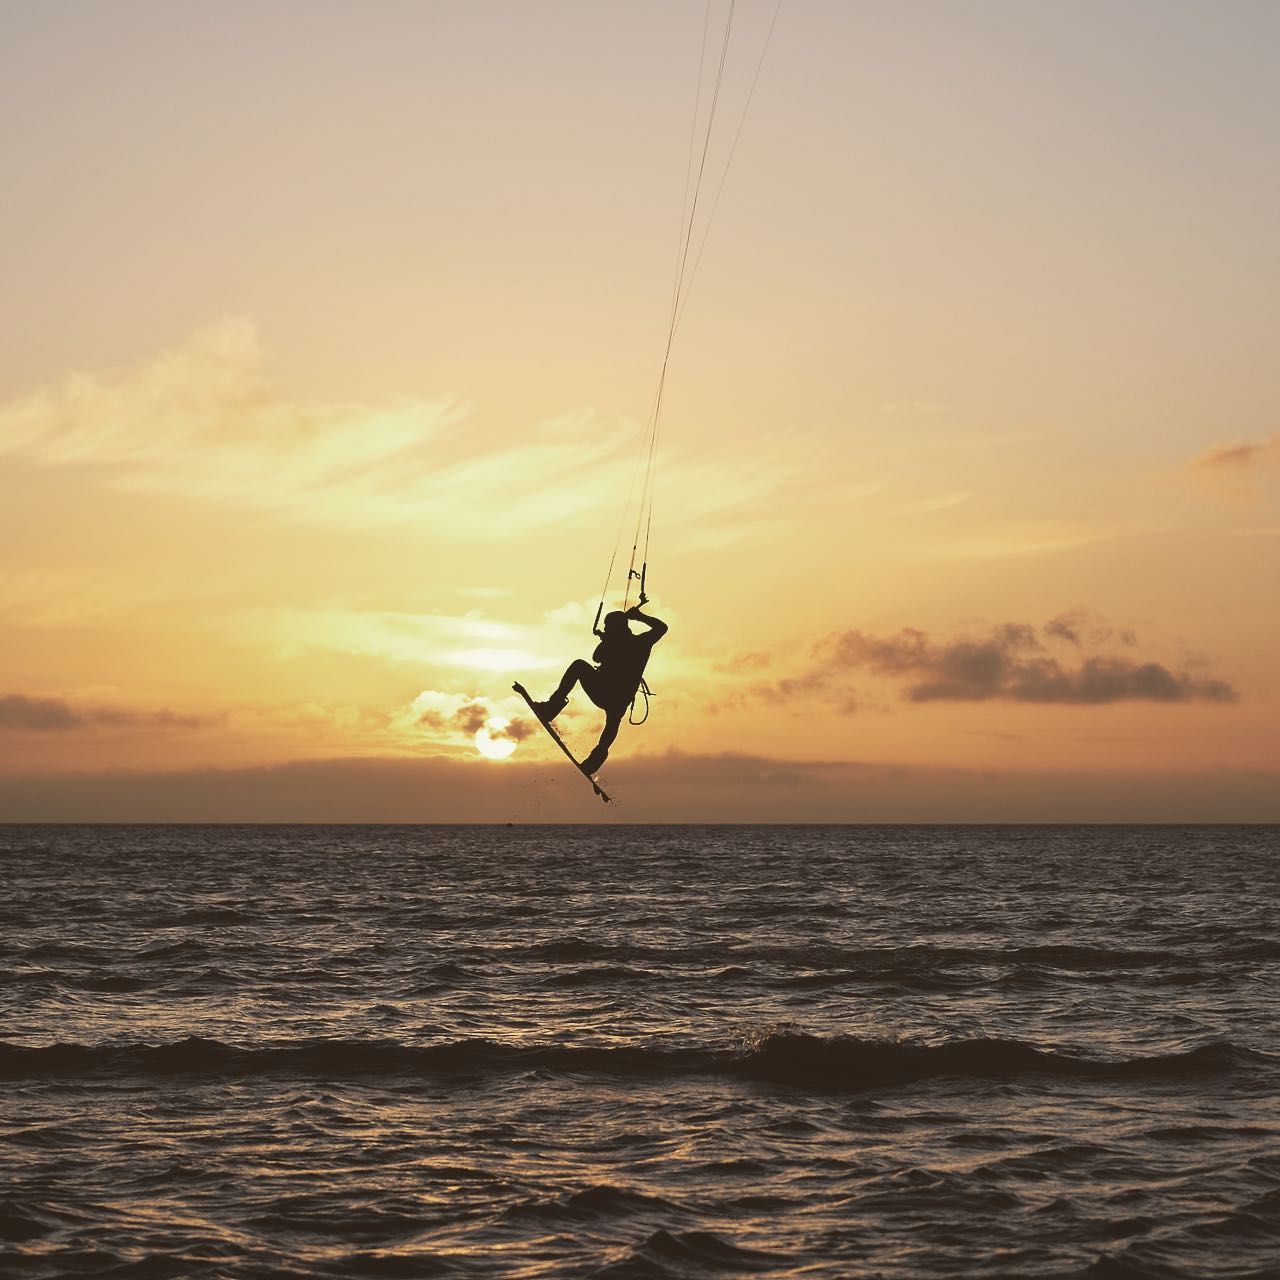 Kite surfing is back after COVID-19